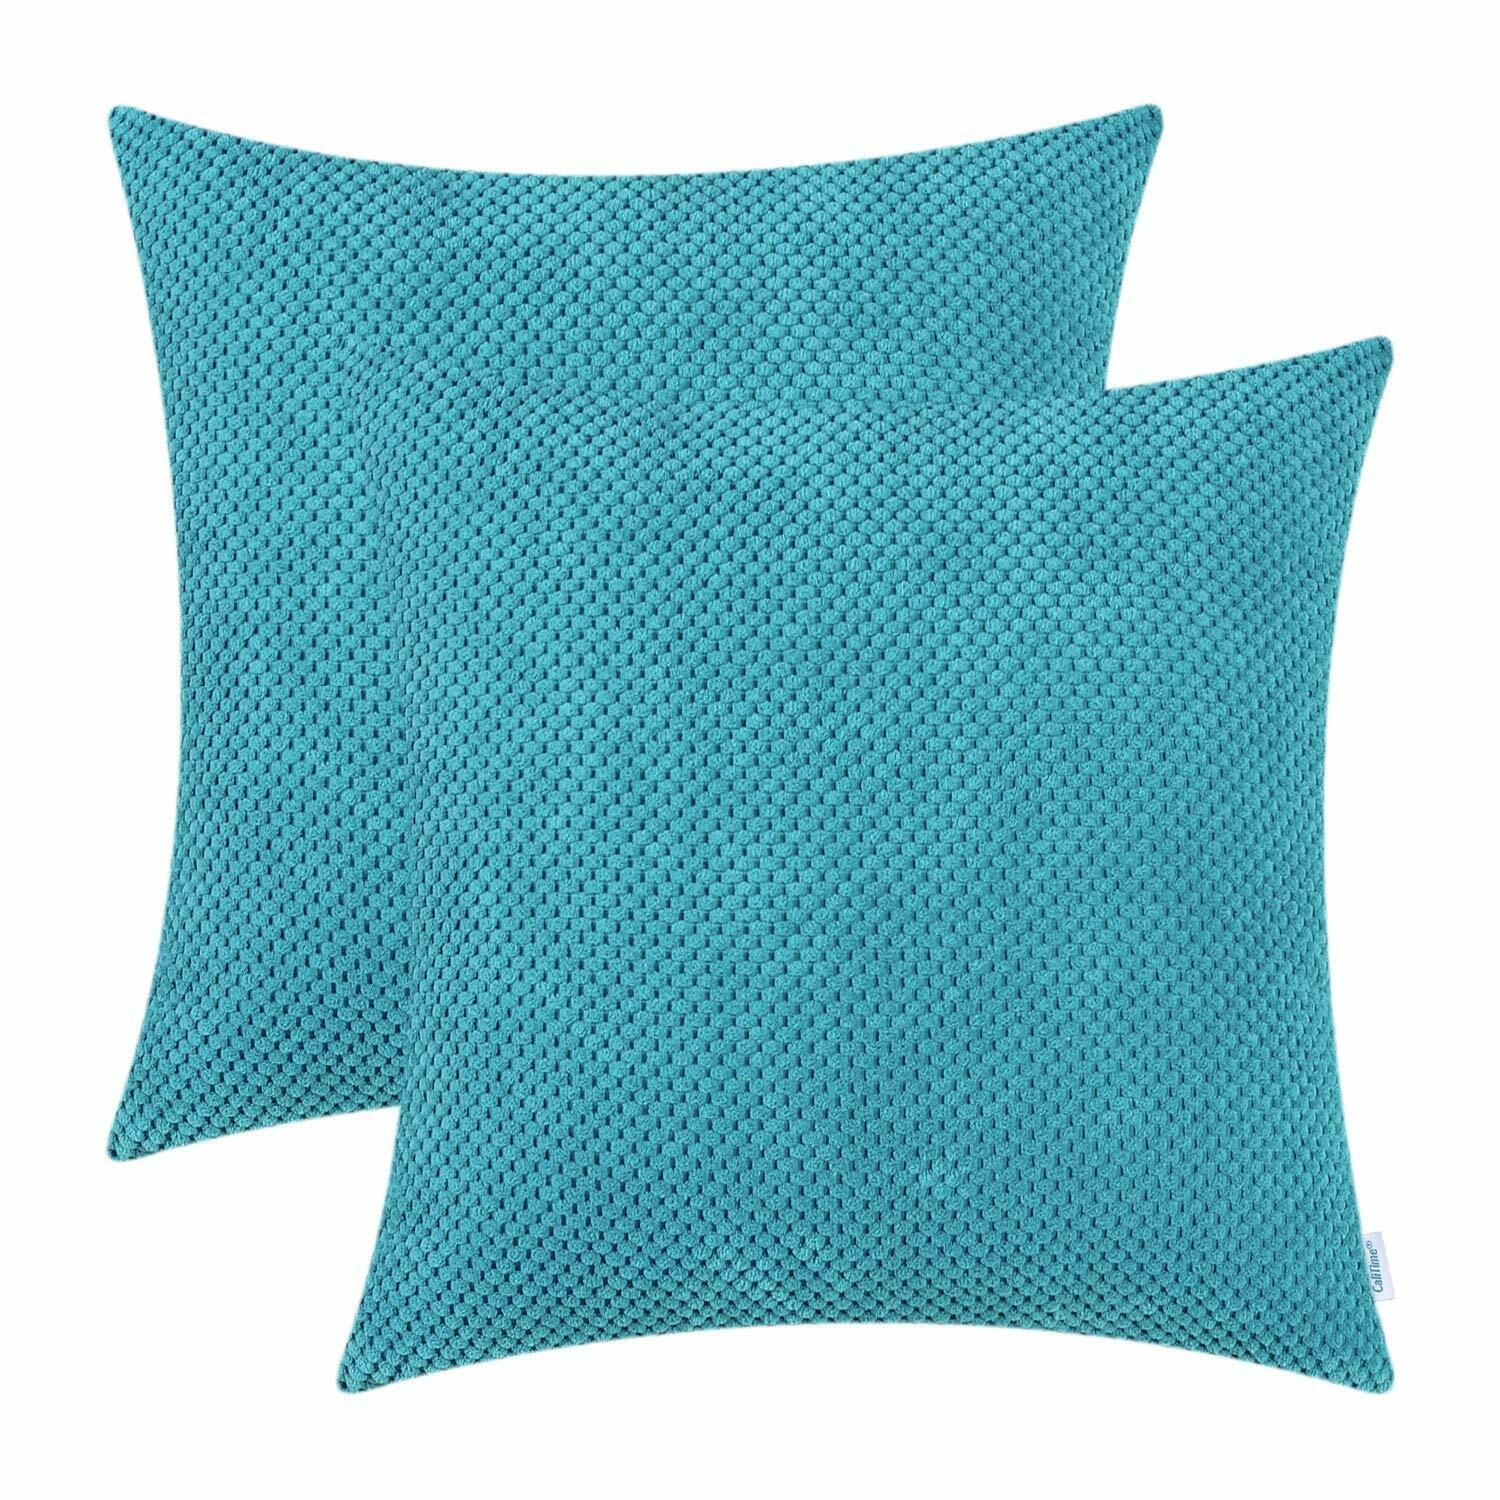 calitime pack of 2 comfy throw pillow